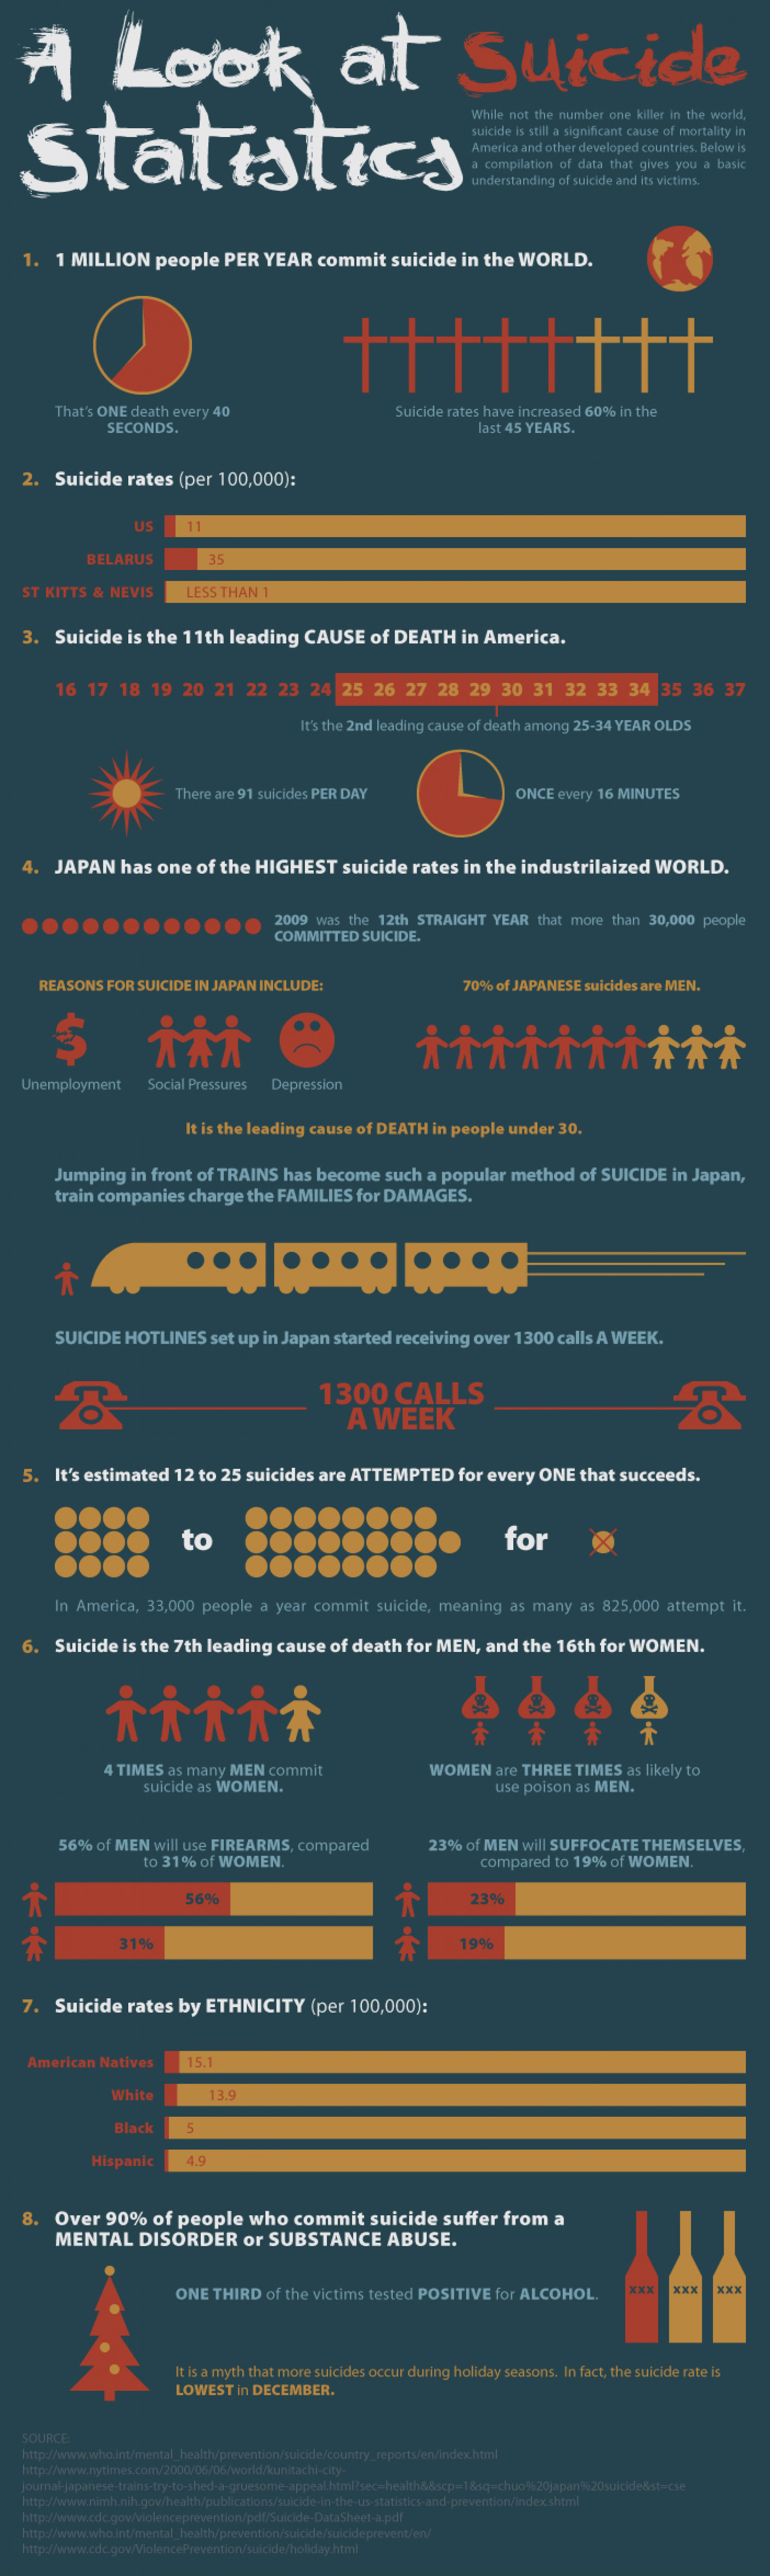 A Look at Suicide Statistics Infographic